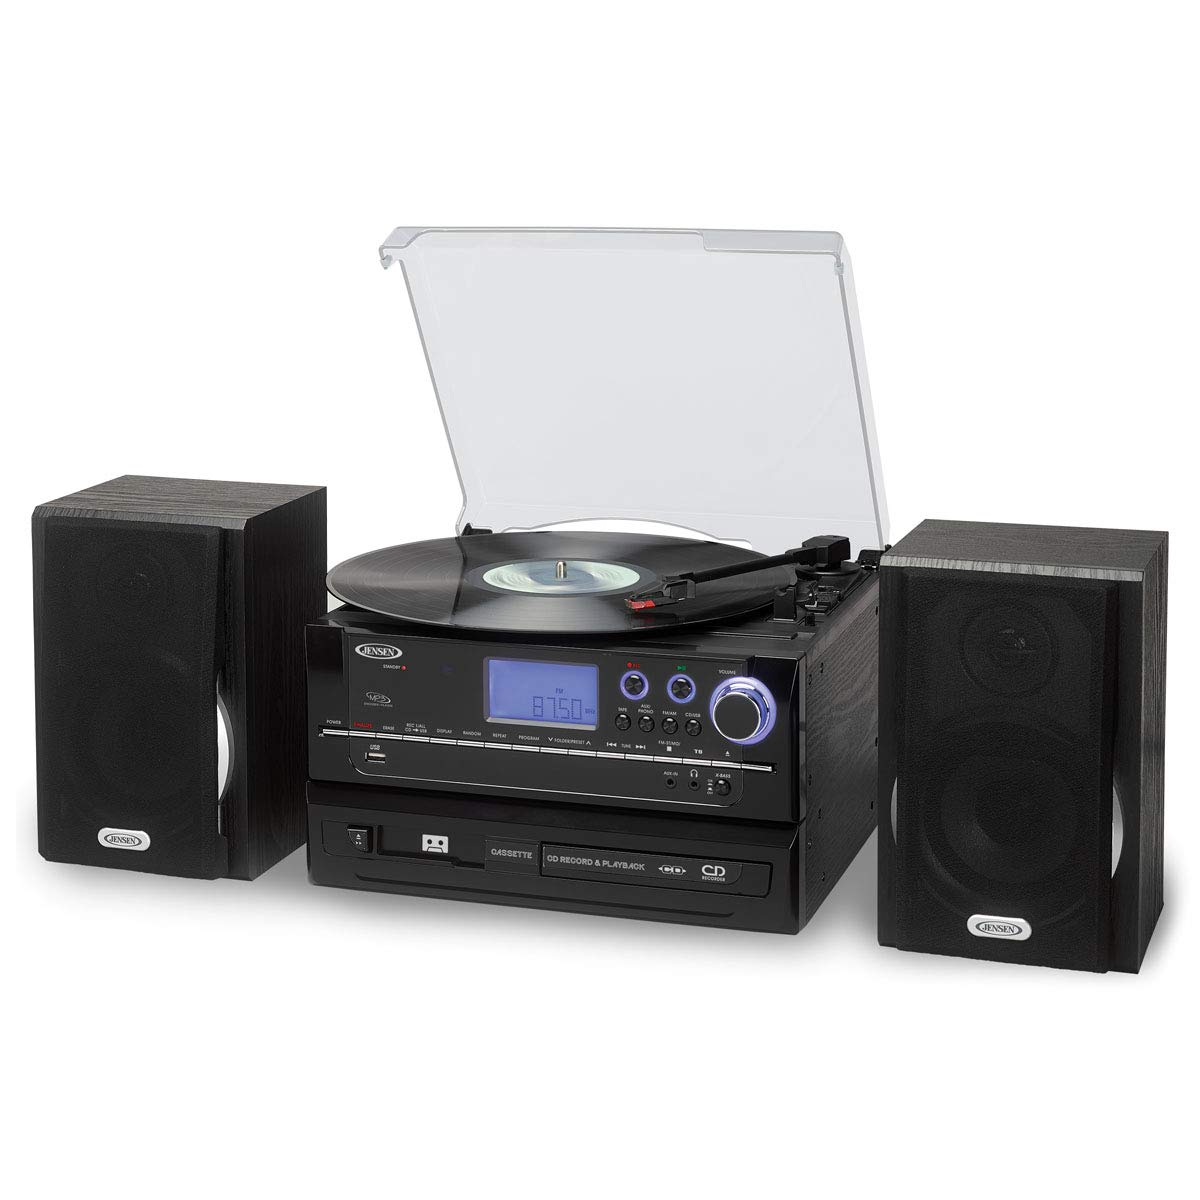 Jensen r Jta-990 3-Speed Stereo Turntable Cd Recording System With Cassette Player, Am fm Stereo Radio Mp3 Encoding